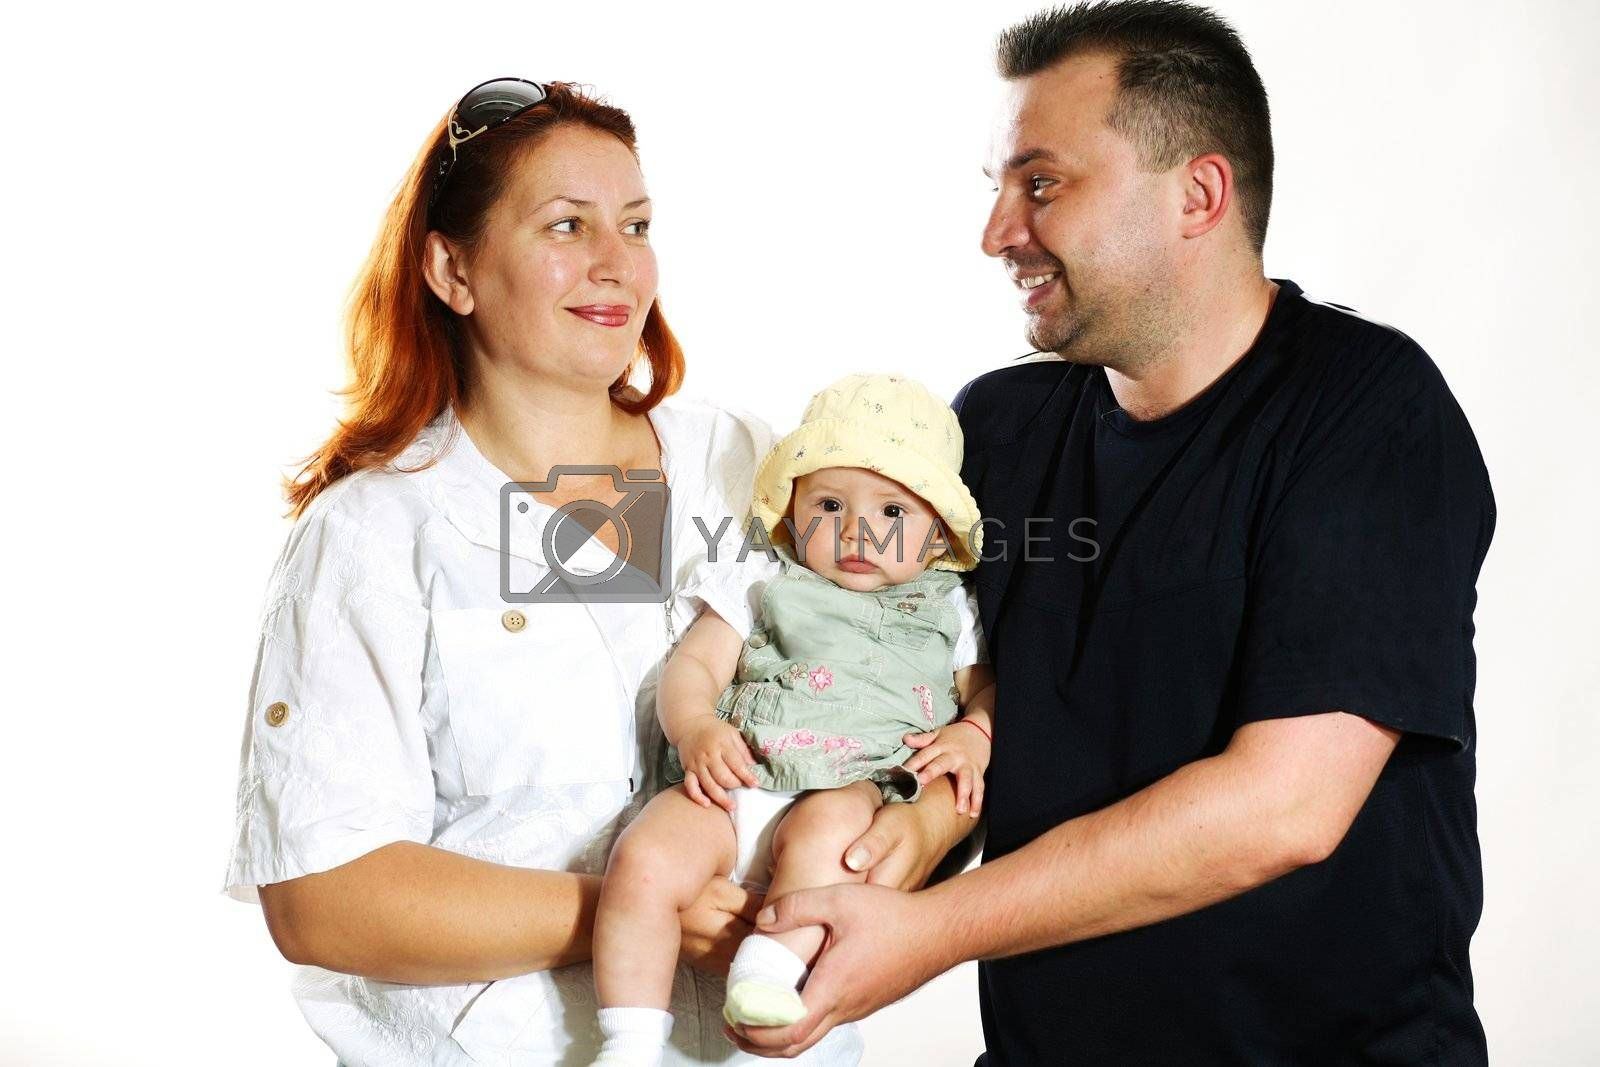 Family portrait in studio. Parents with a child.